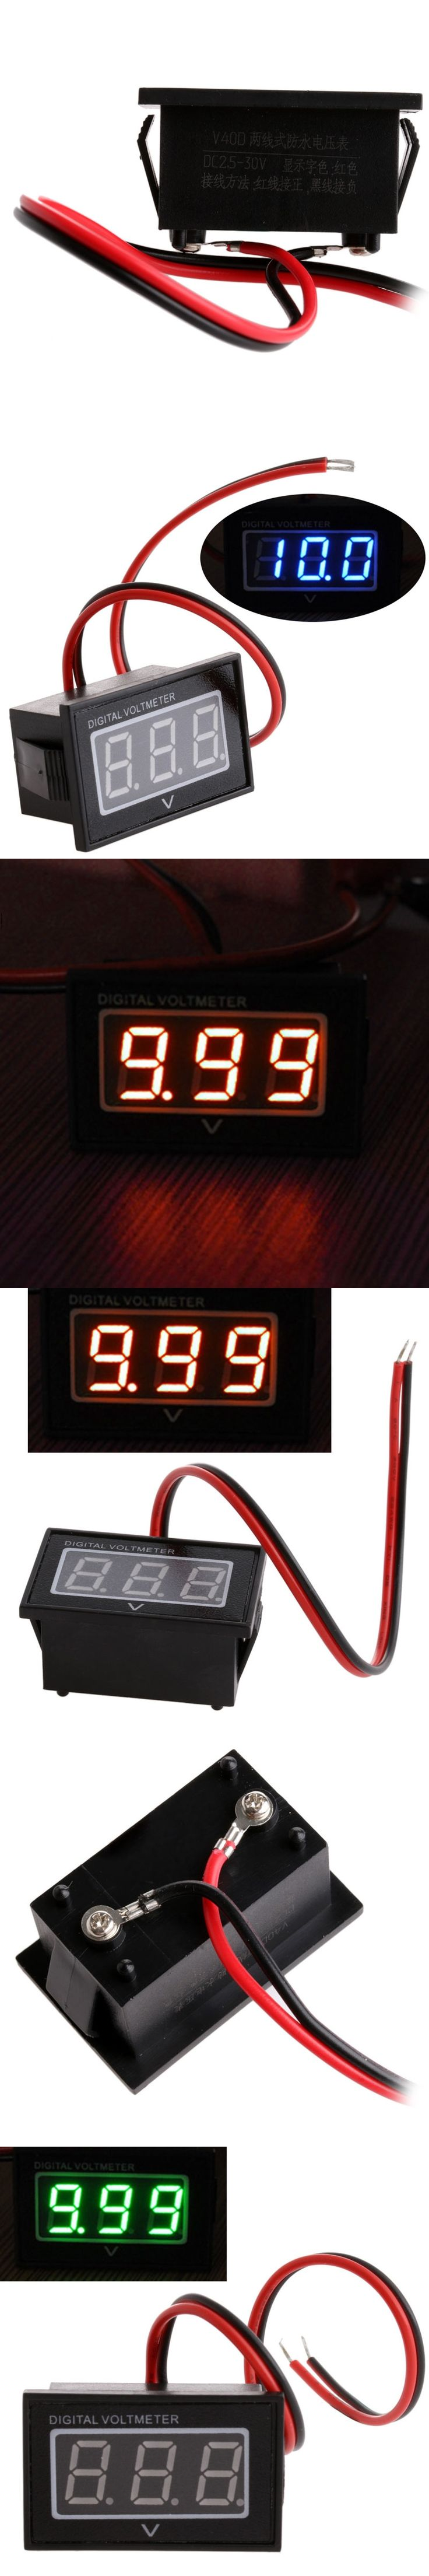 DC 3.0-30V Waterproof Battery Meter Auto Car Gauge Digital Voltmeter LED